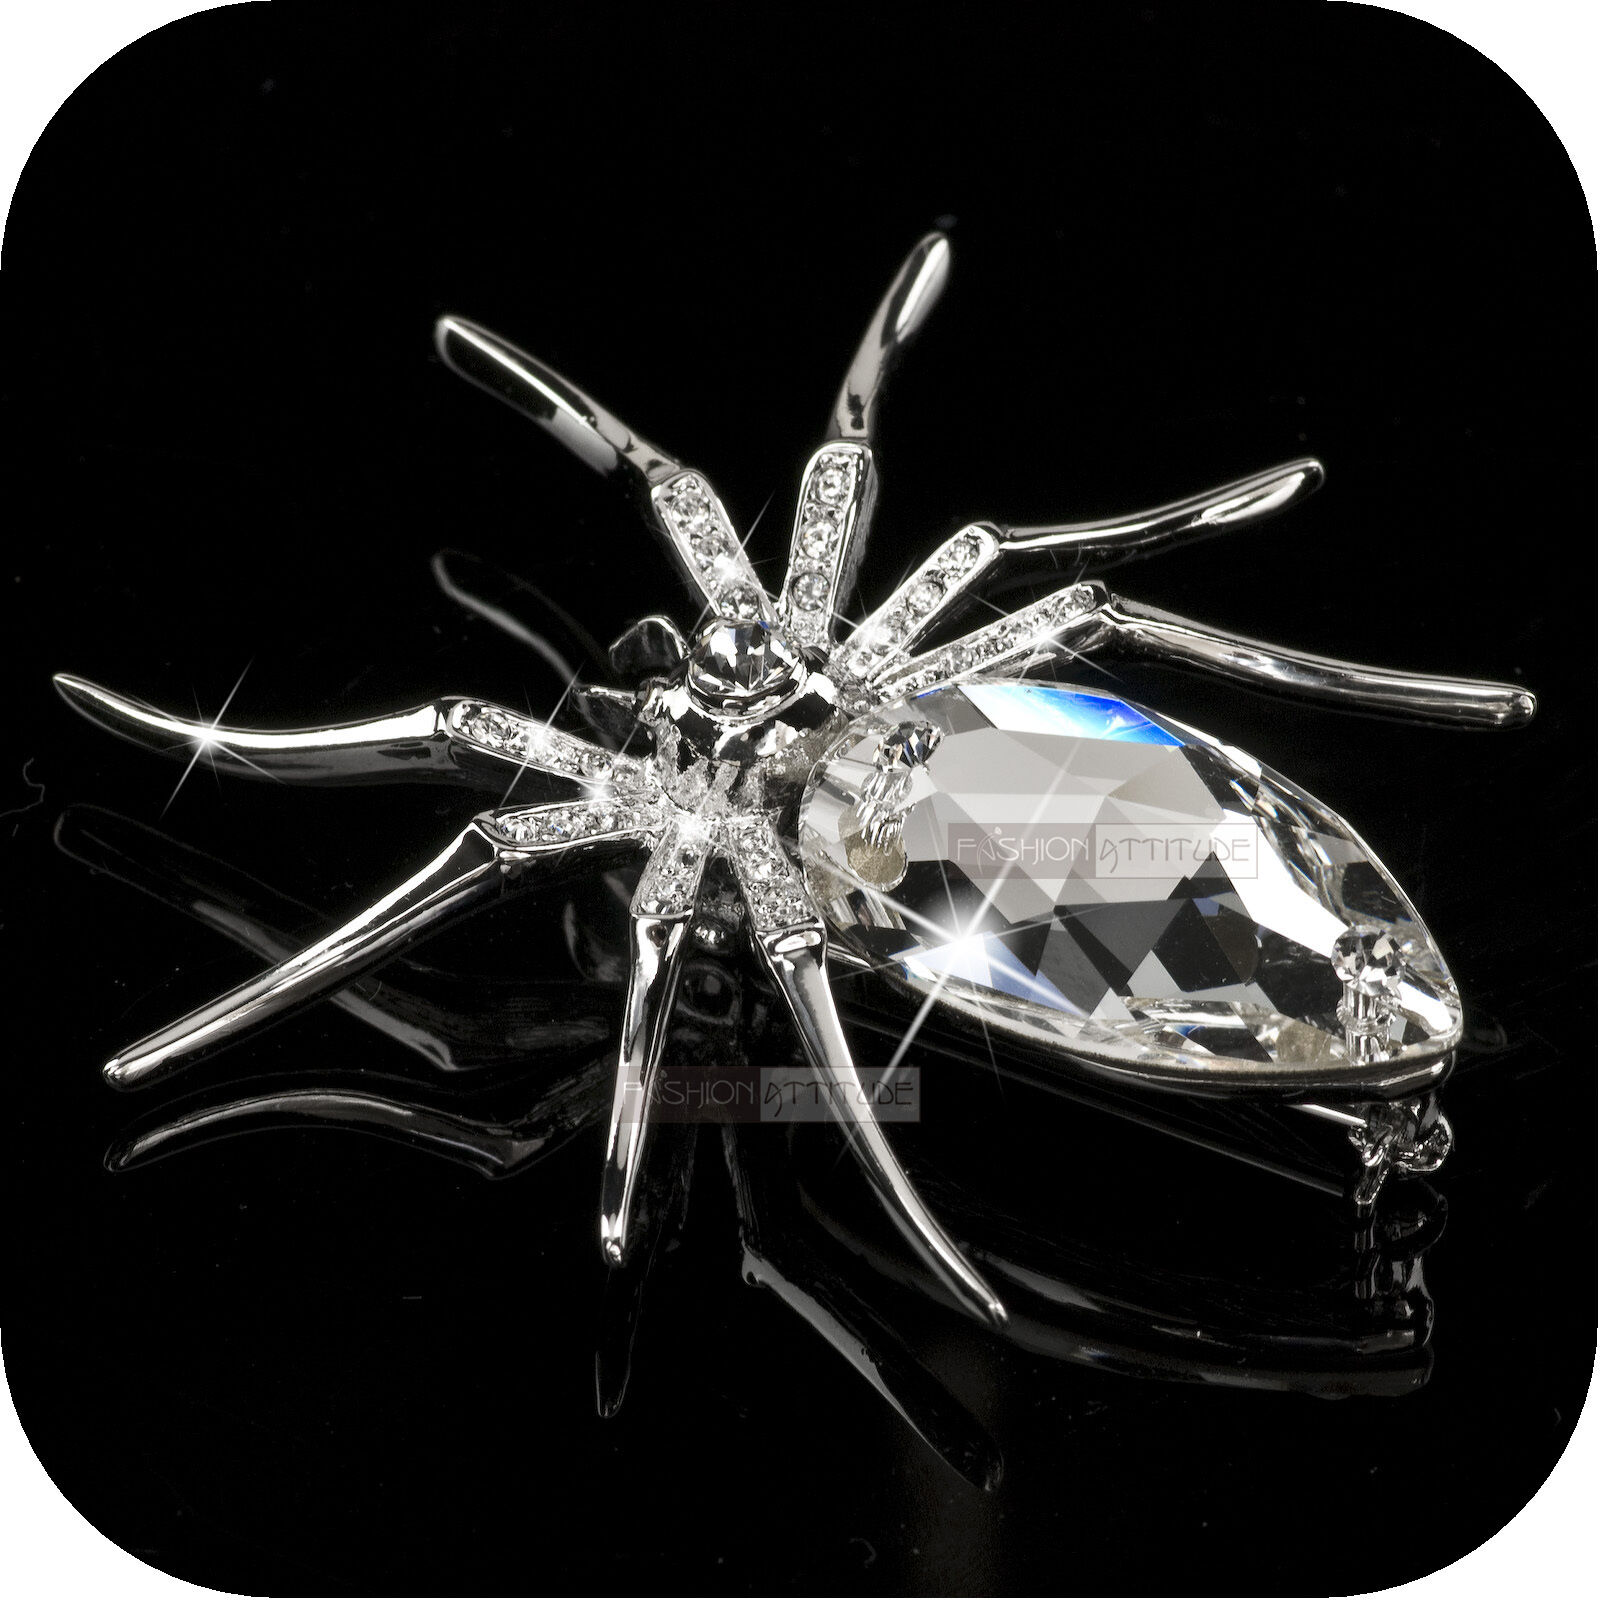 f4d43efbb31 18k white gold gp made with clear swarovski crystal luxury spider brooch  fashion